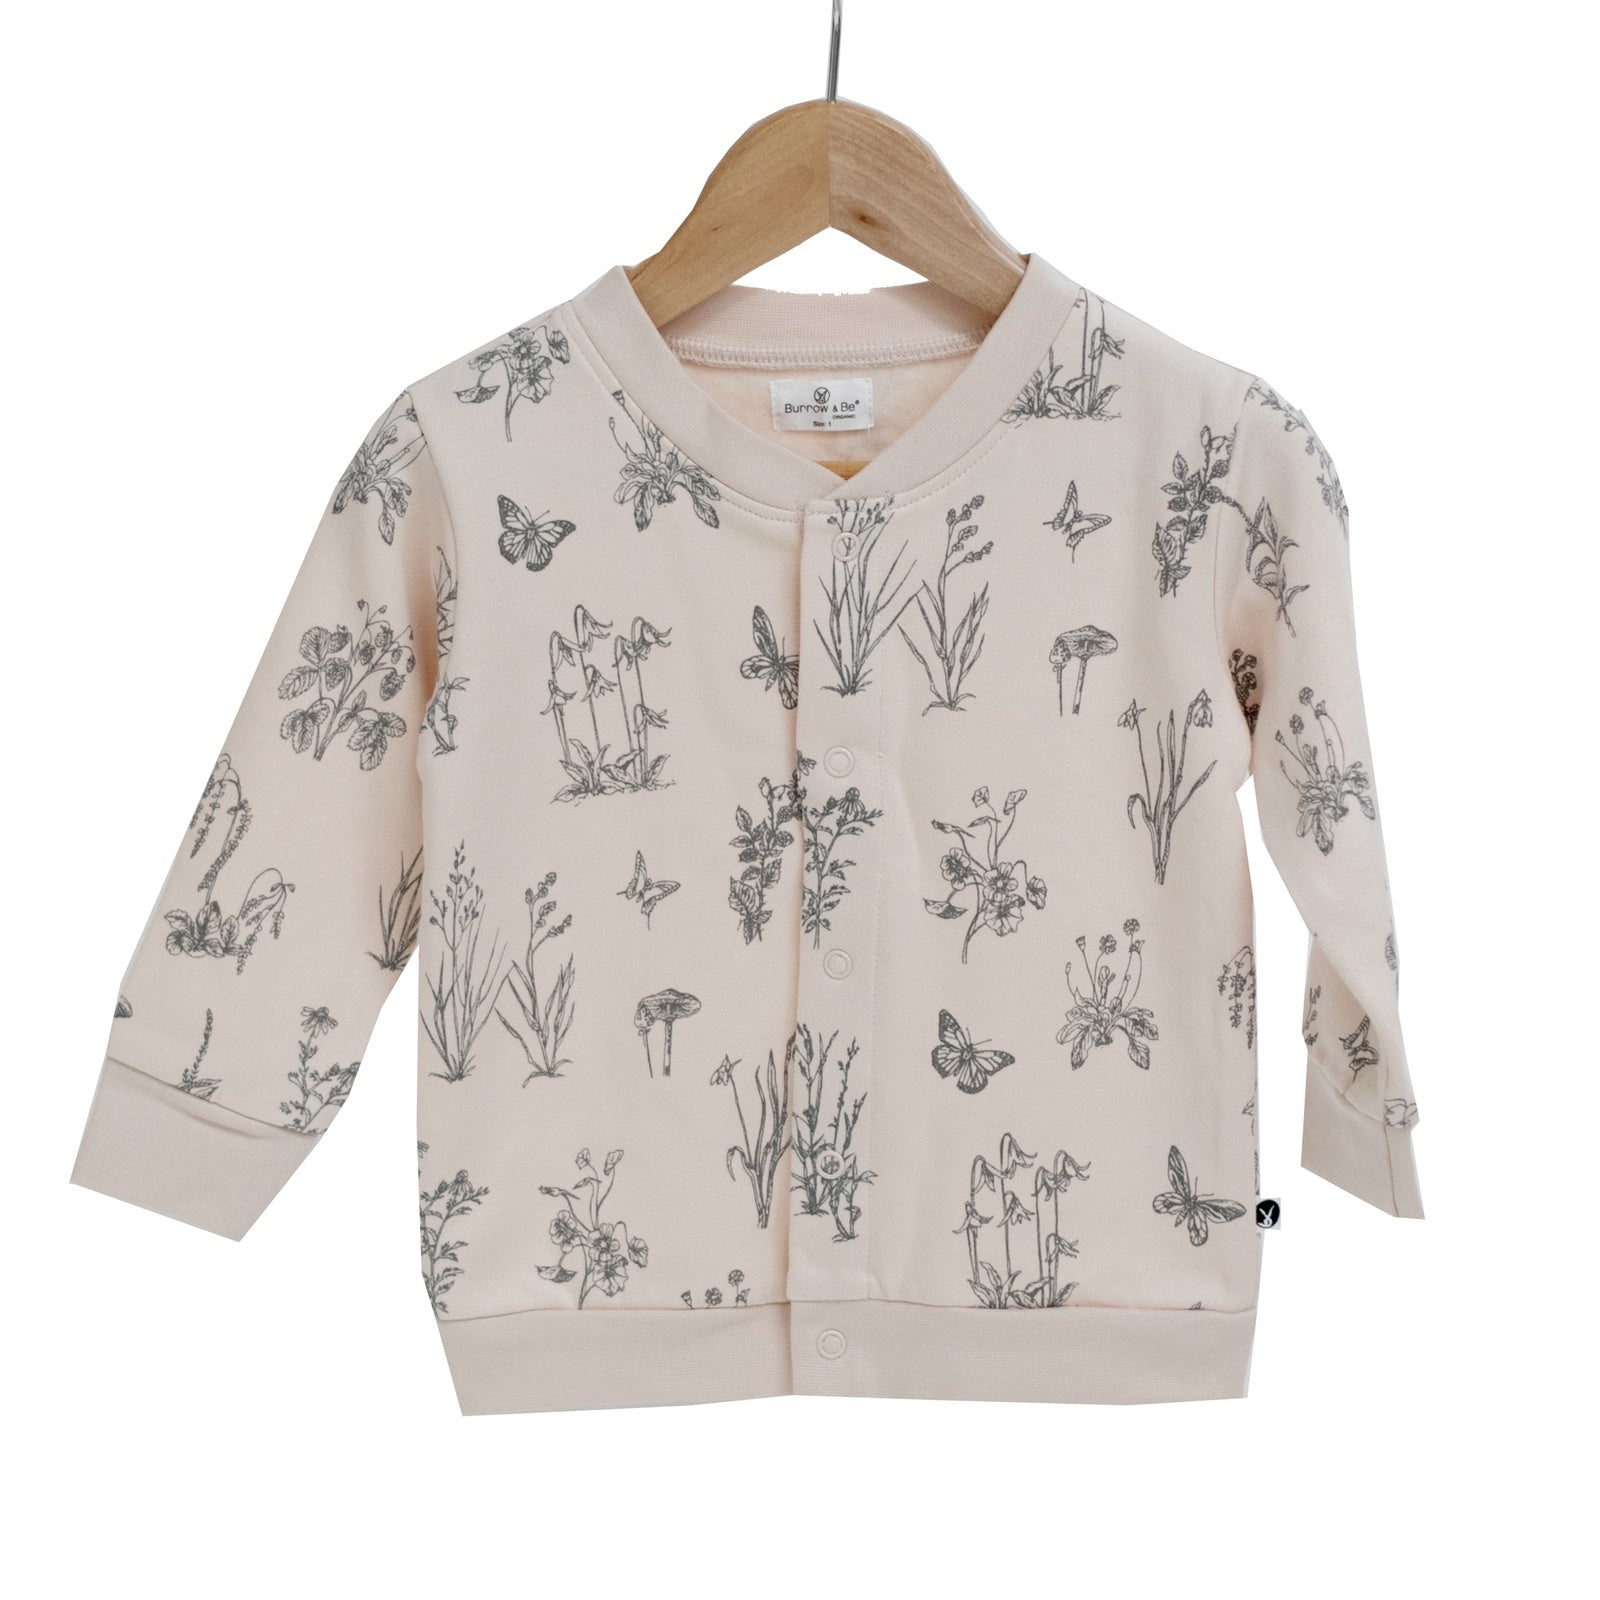 Burrow & Be Blush Meadow Cardi